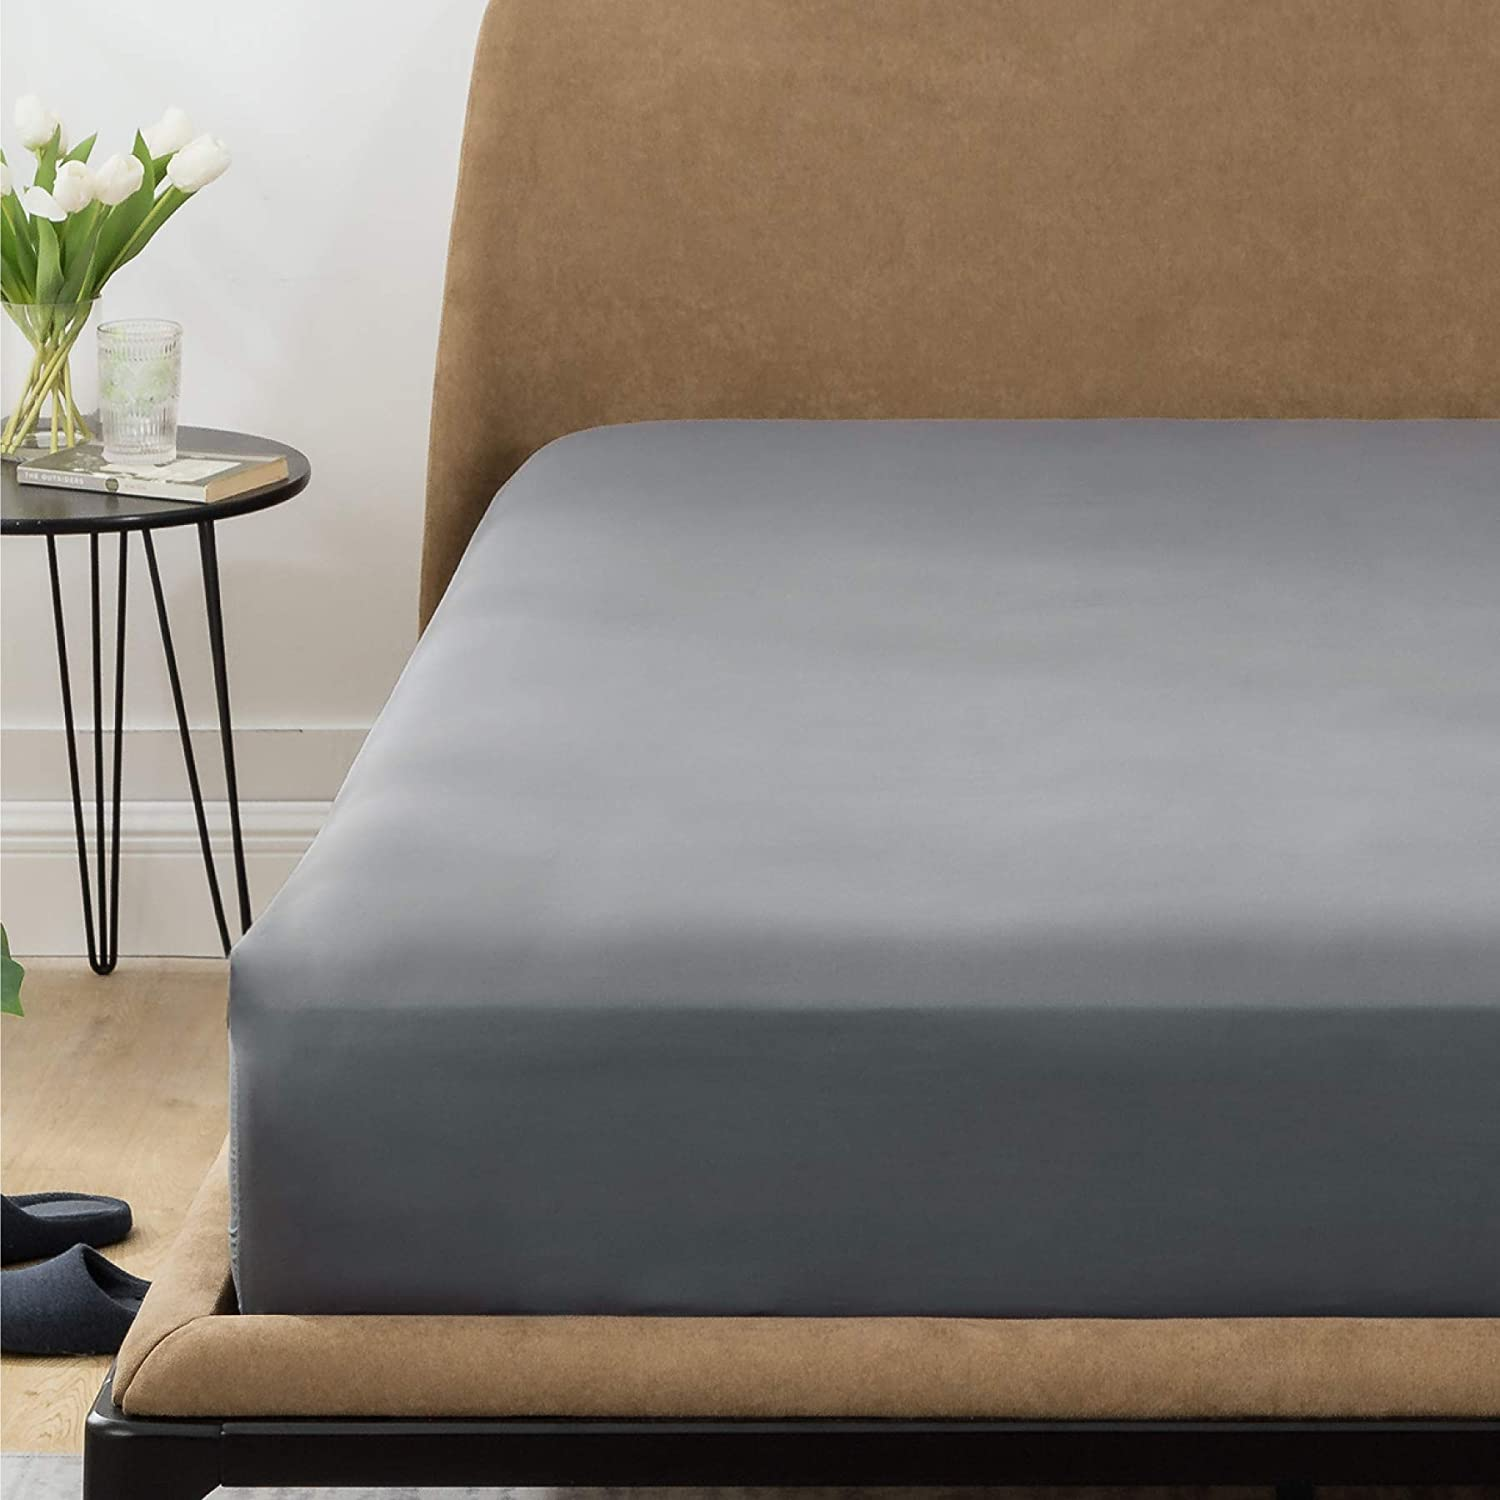 Bedsure Fitted Sheet King Grey - Extra Soft Brushed Microfiber, Wrinkle & Fade Resistant, Deep Pocket Fitted Sheets for Mattress Up to 14 inches(King, Dark Grey)